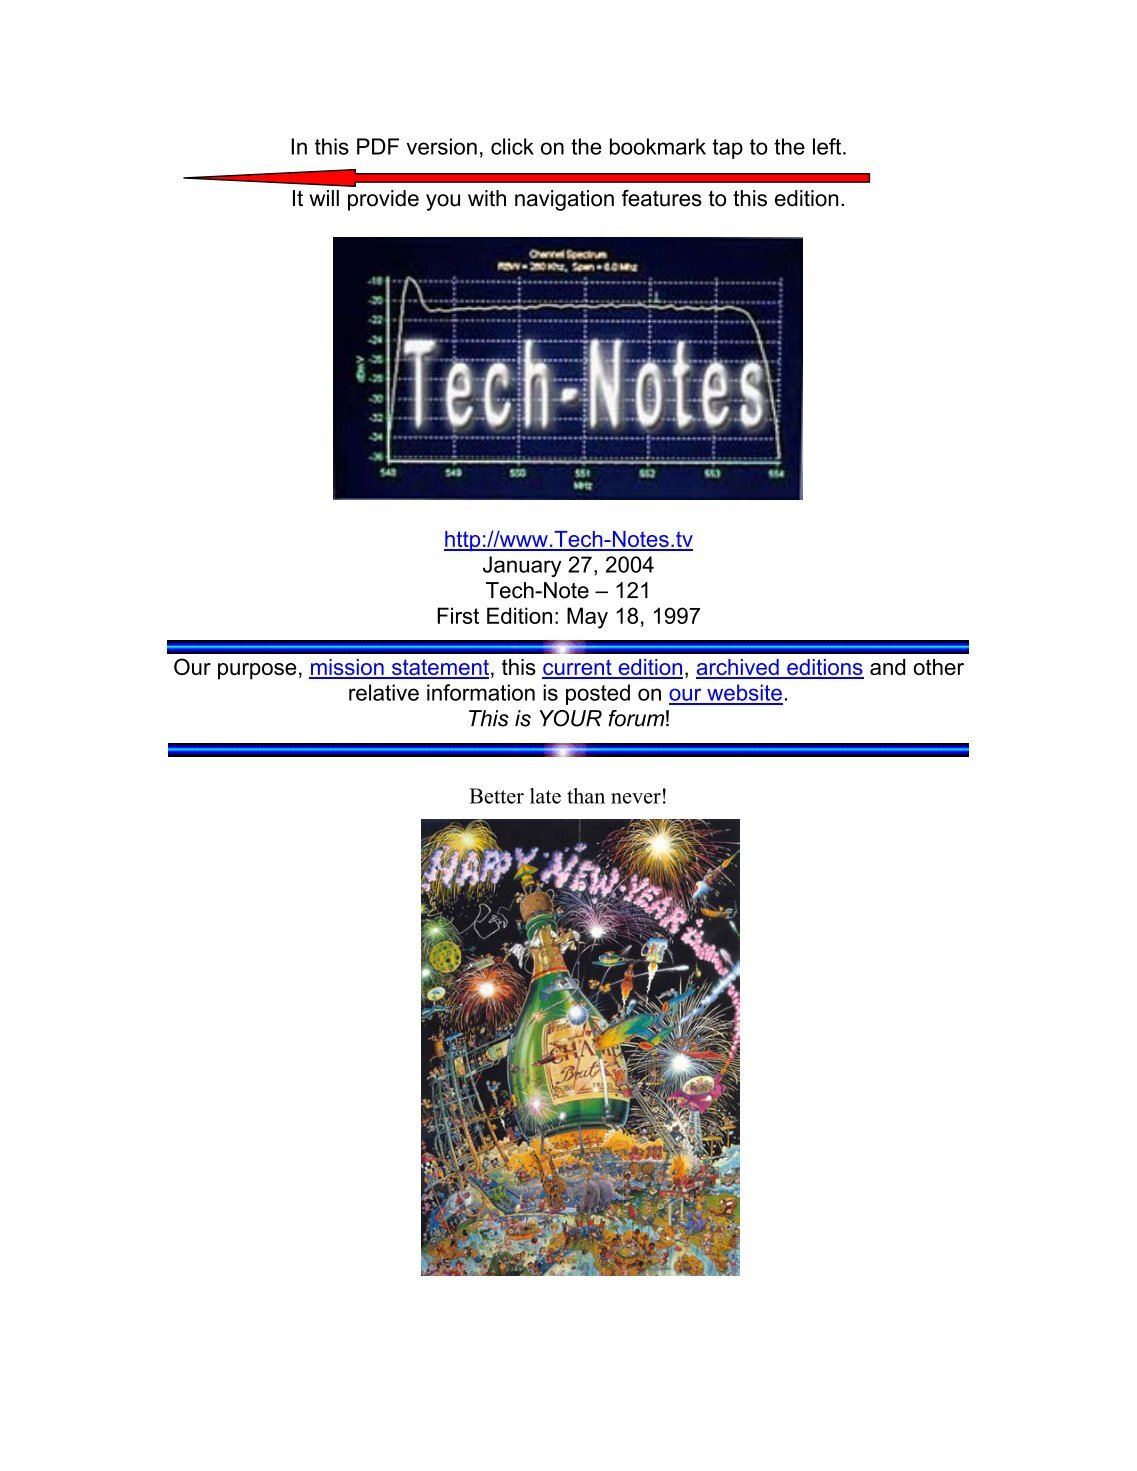 2 Free Magazines From Technotestv Click The Image For A Pdf Version